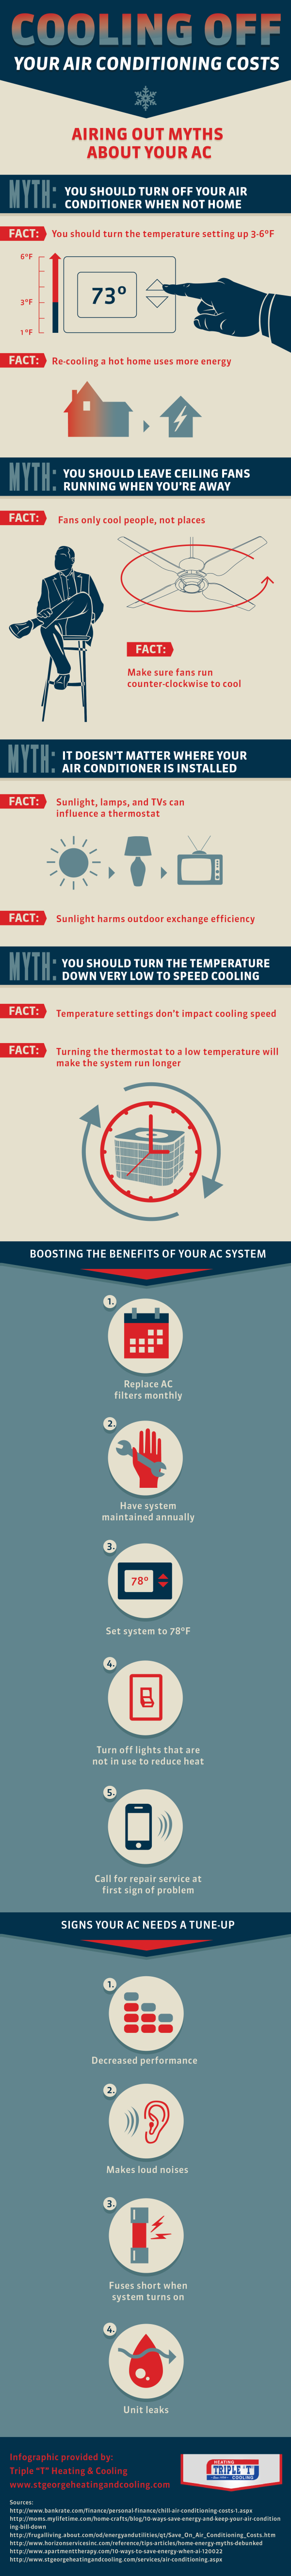 Cooling-Off-Your-Air-Conditioning-Costs-INFOGRAPHIC